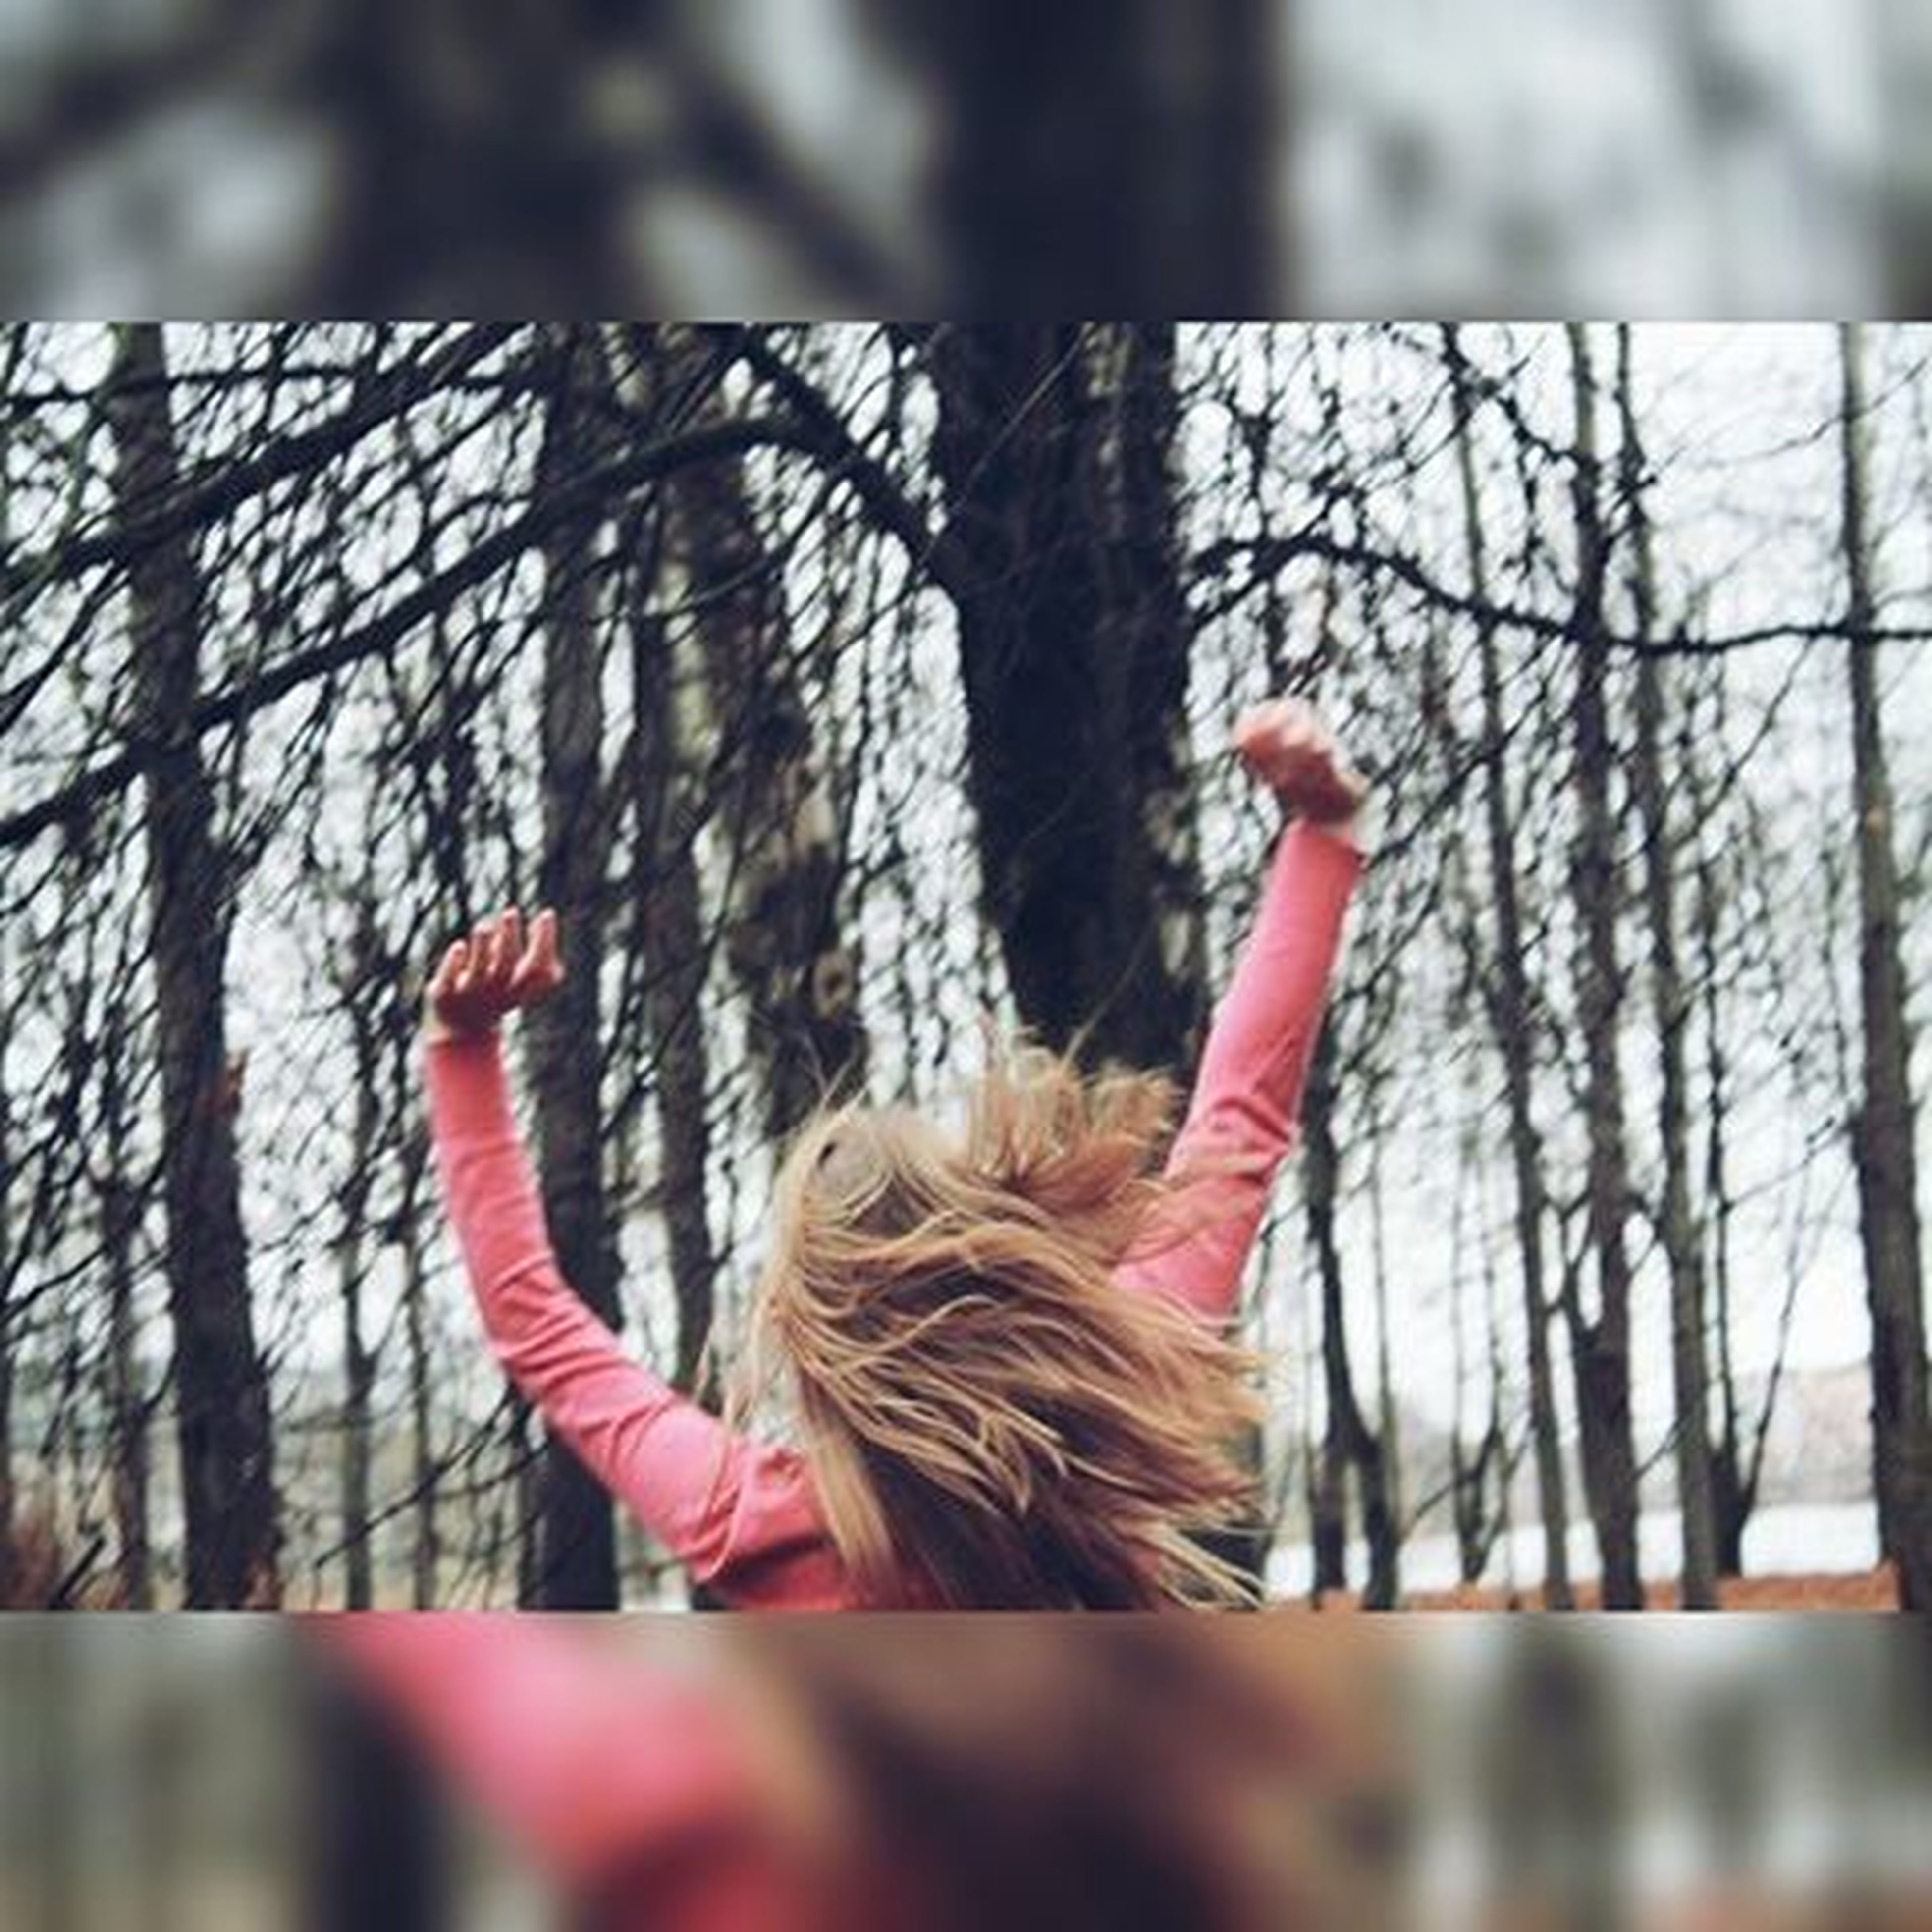 tree, focus on foreground, day, childhood, sitting, selective focus, leisure activity, lifestyles, outdoors, sunlight, red, low angle view, person, holding, full length, hanging, girls